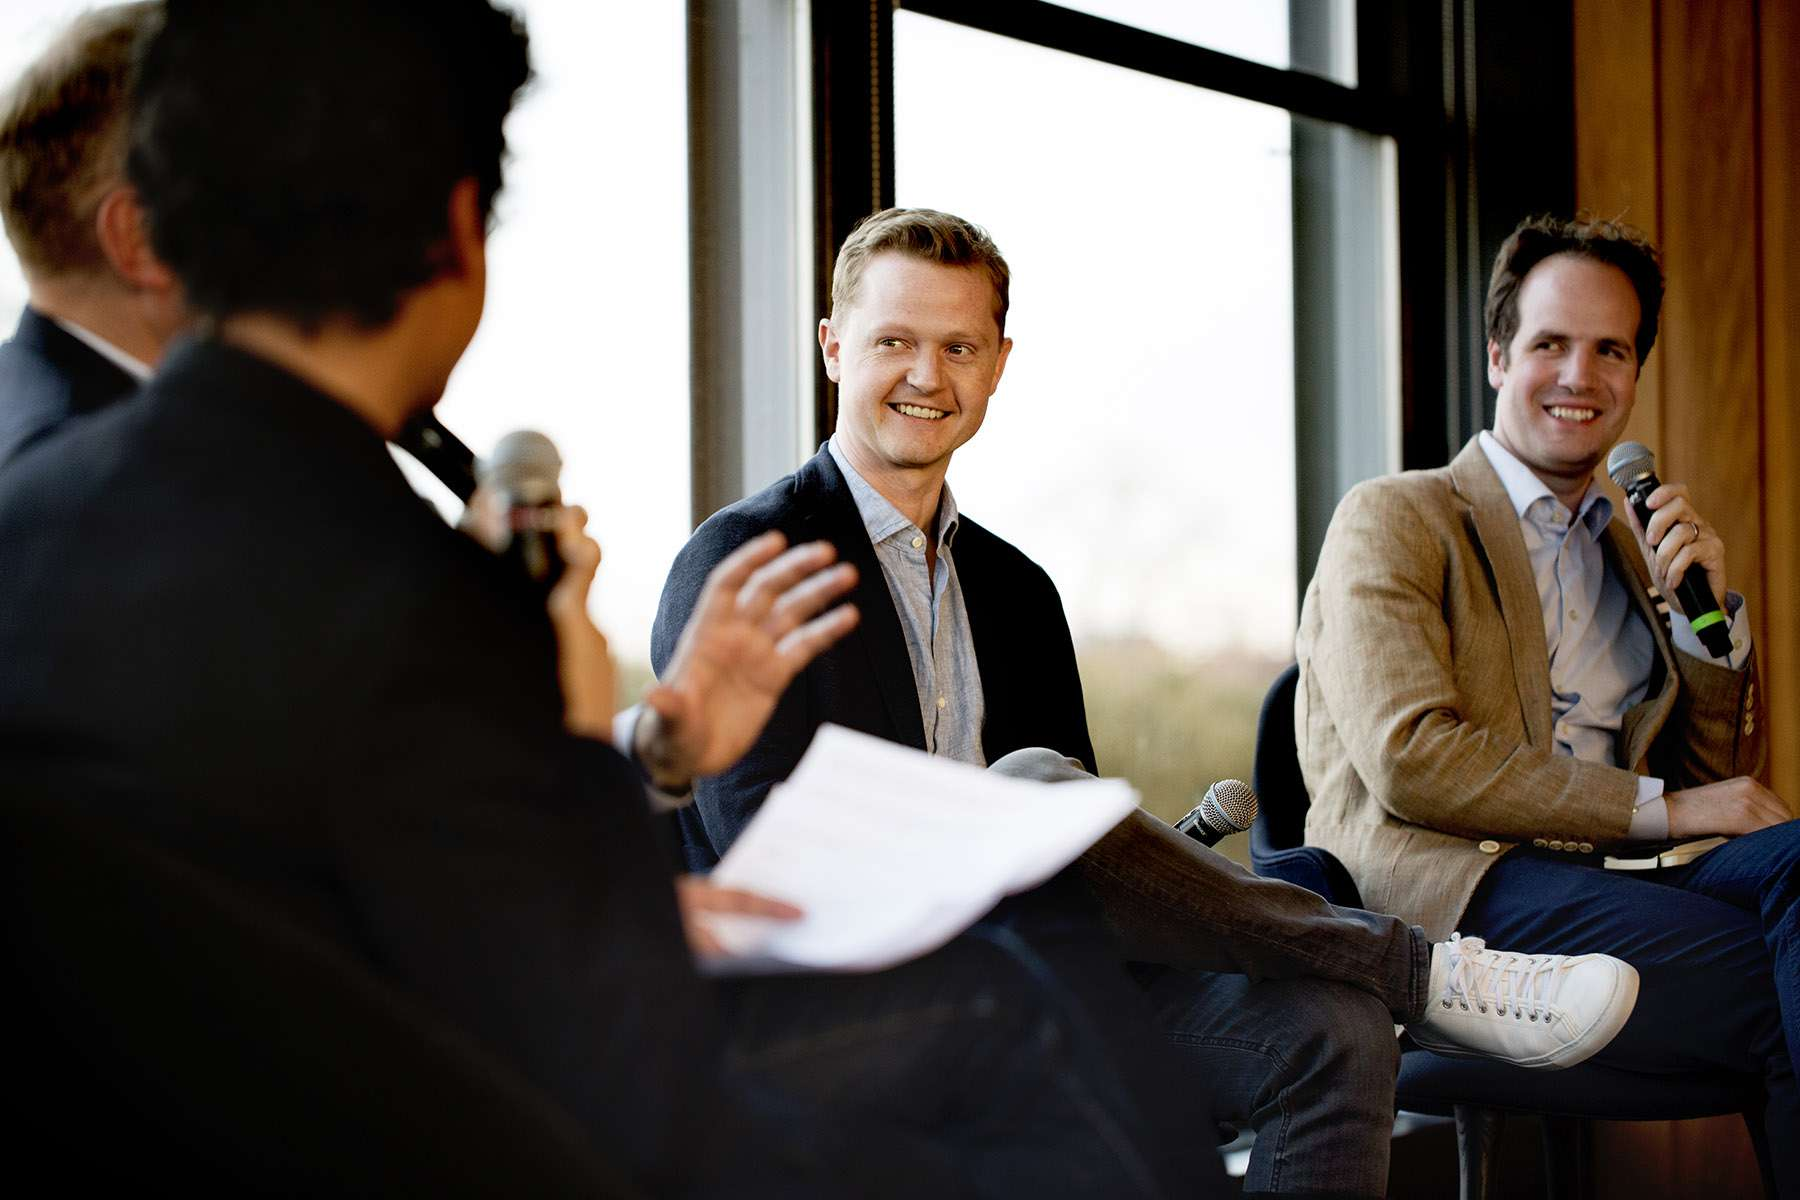 Index Ventures_Event_034.JPG